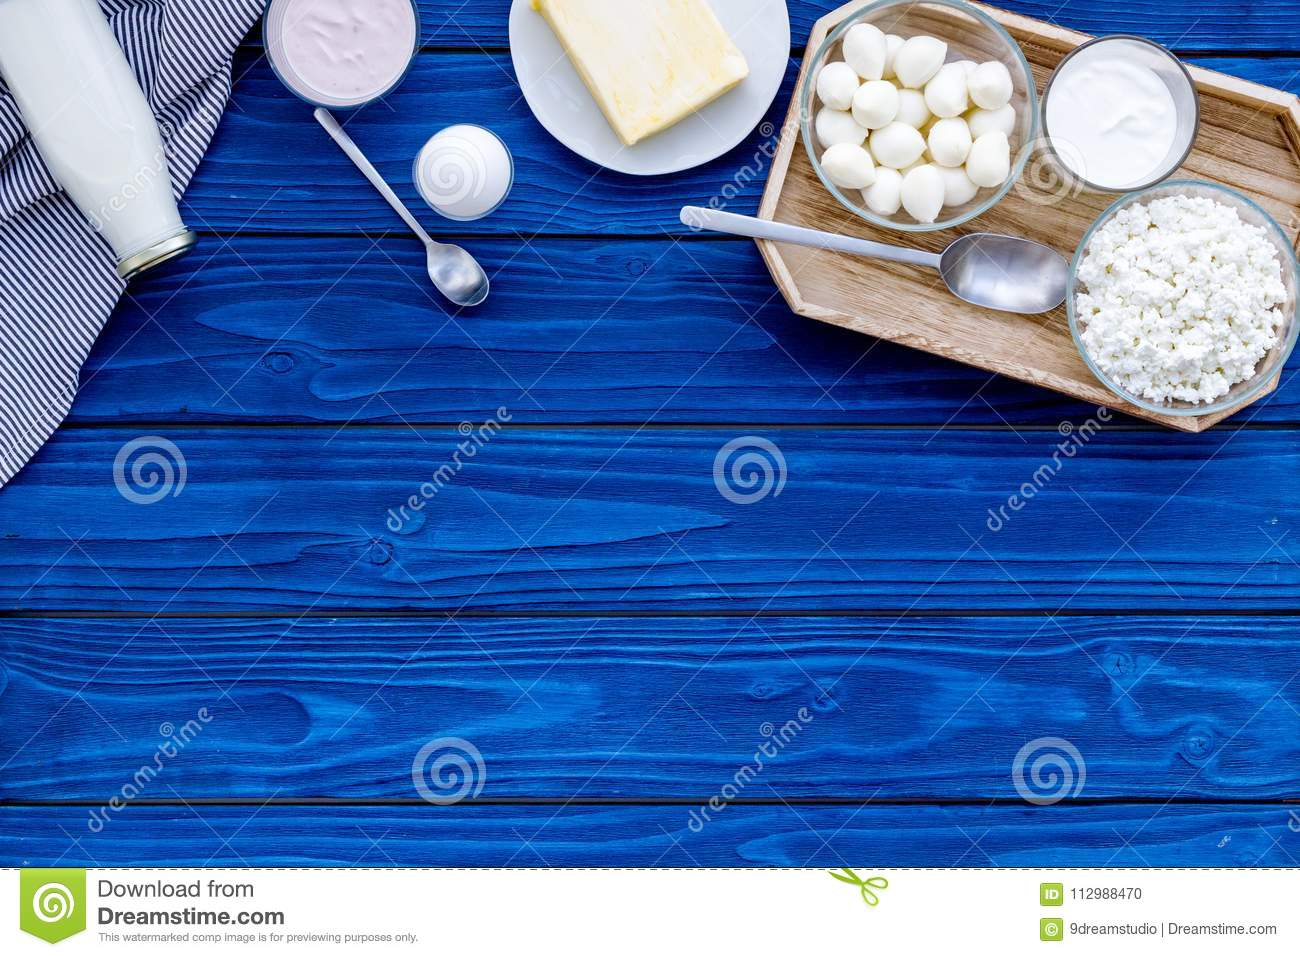 Breakfast on farm with dairy products. Milk, cottage, cheese, yougurt on blue table top view mock-up